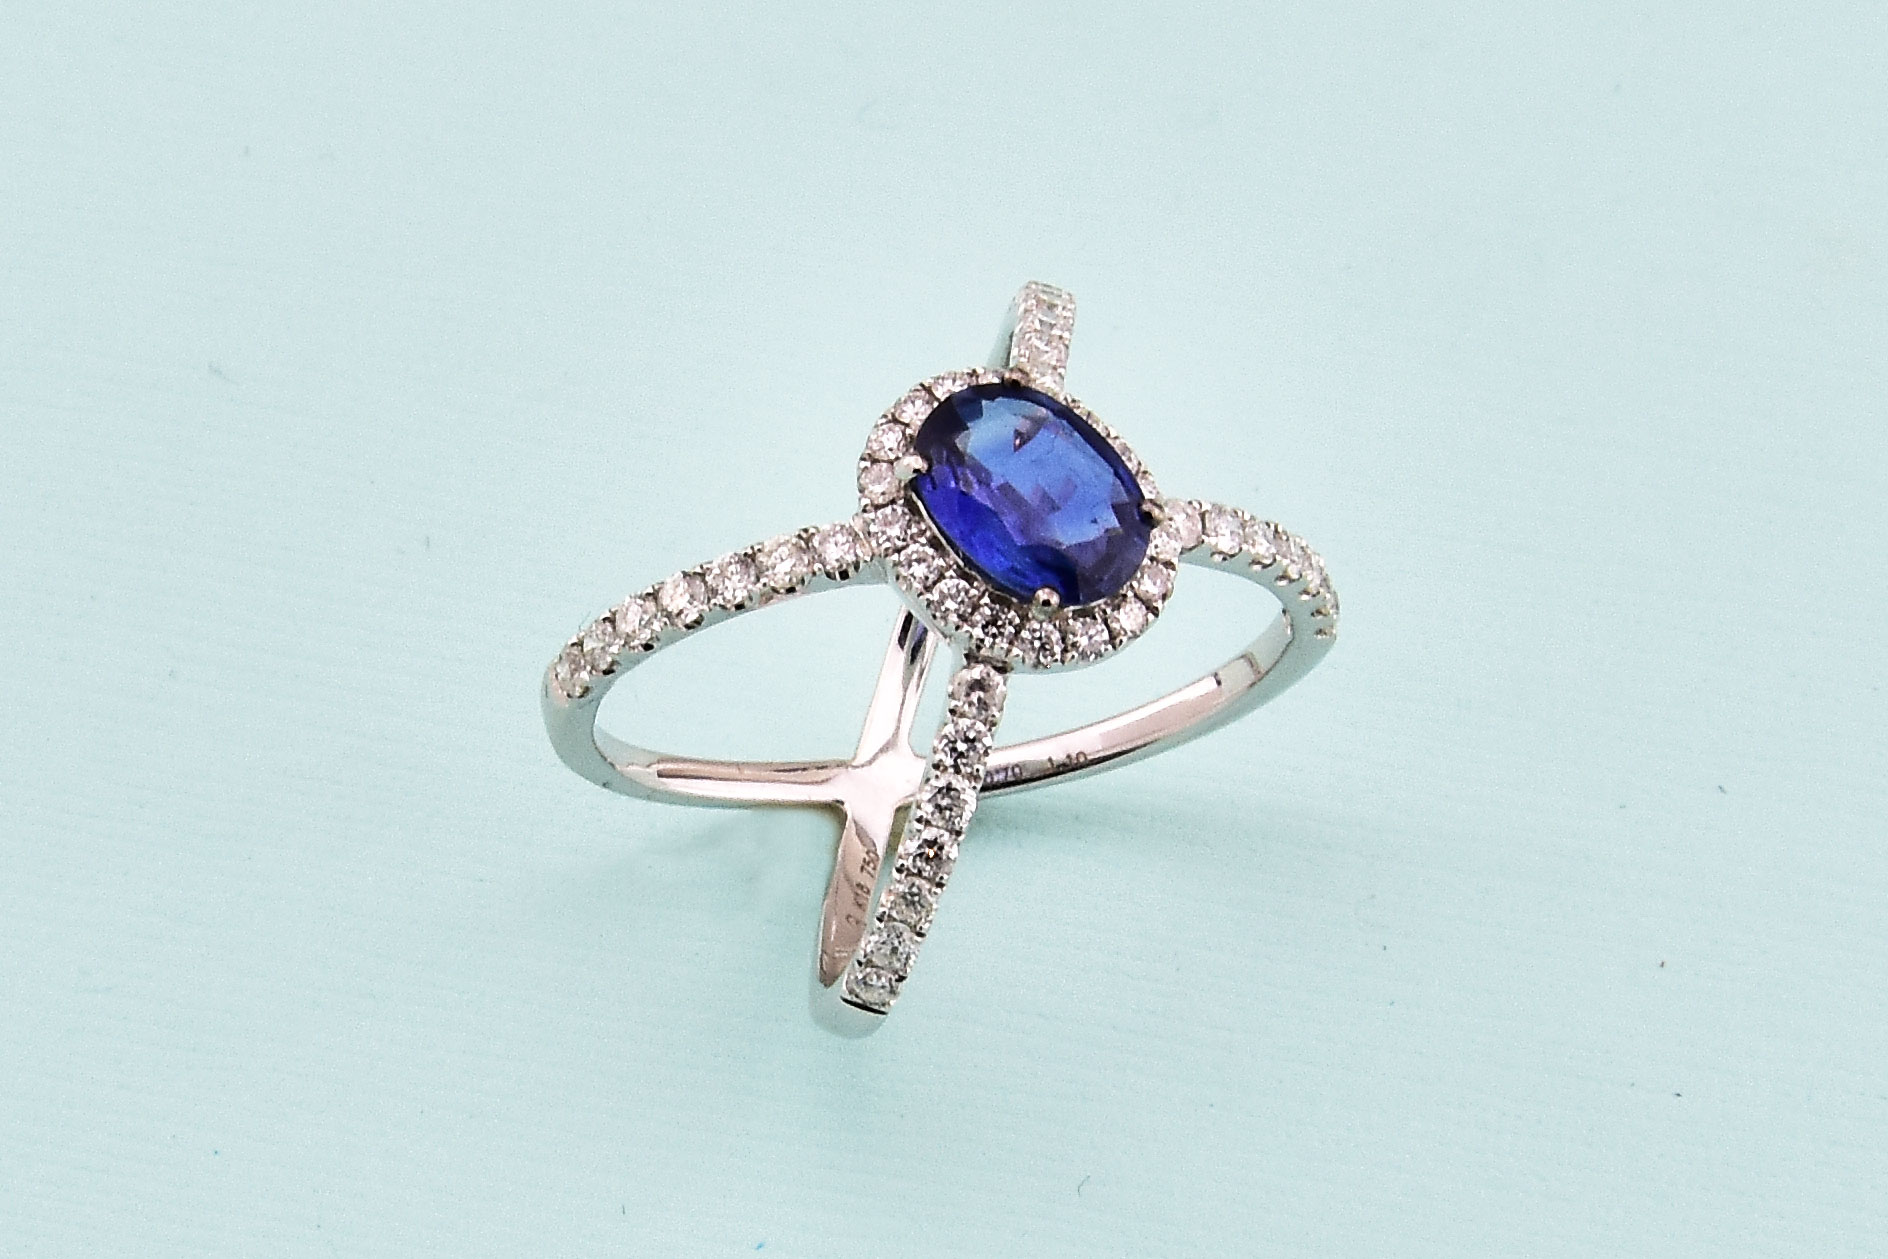 Over 1 Carat Sapphire Diamond Cocktail Ring